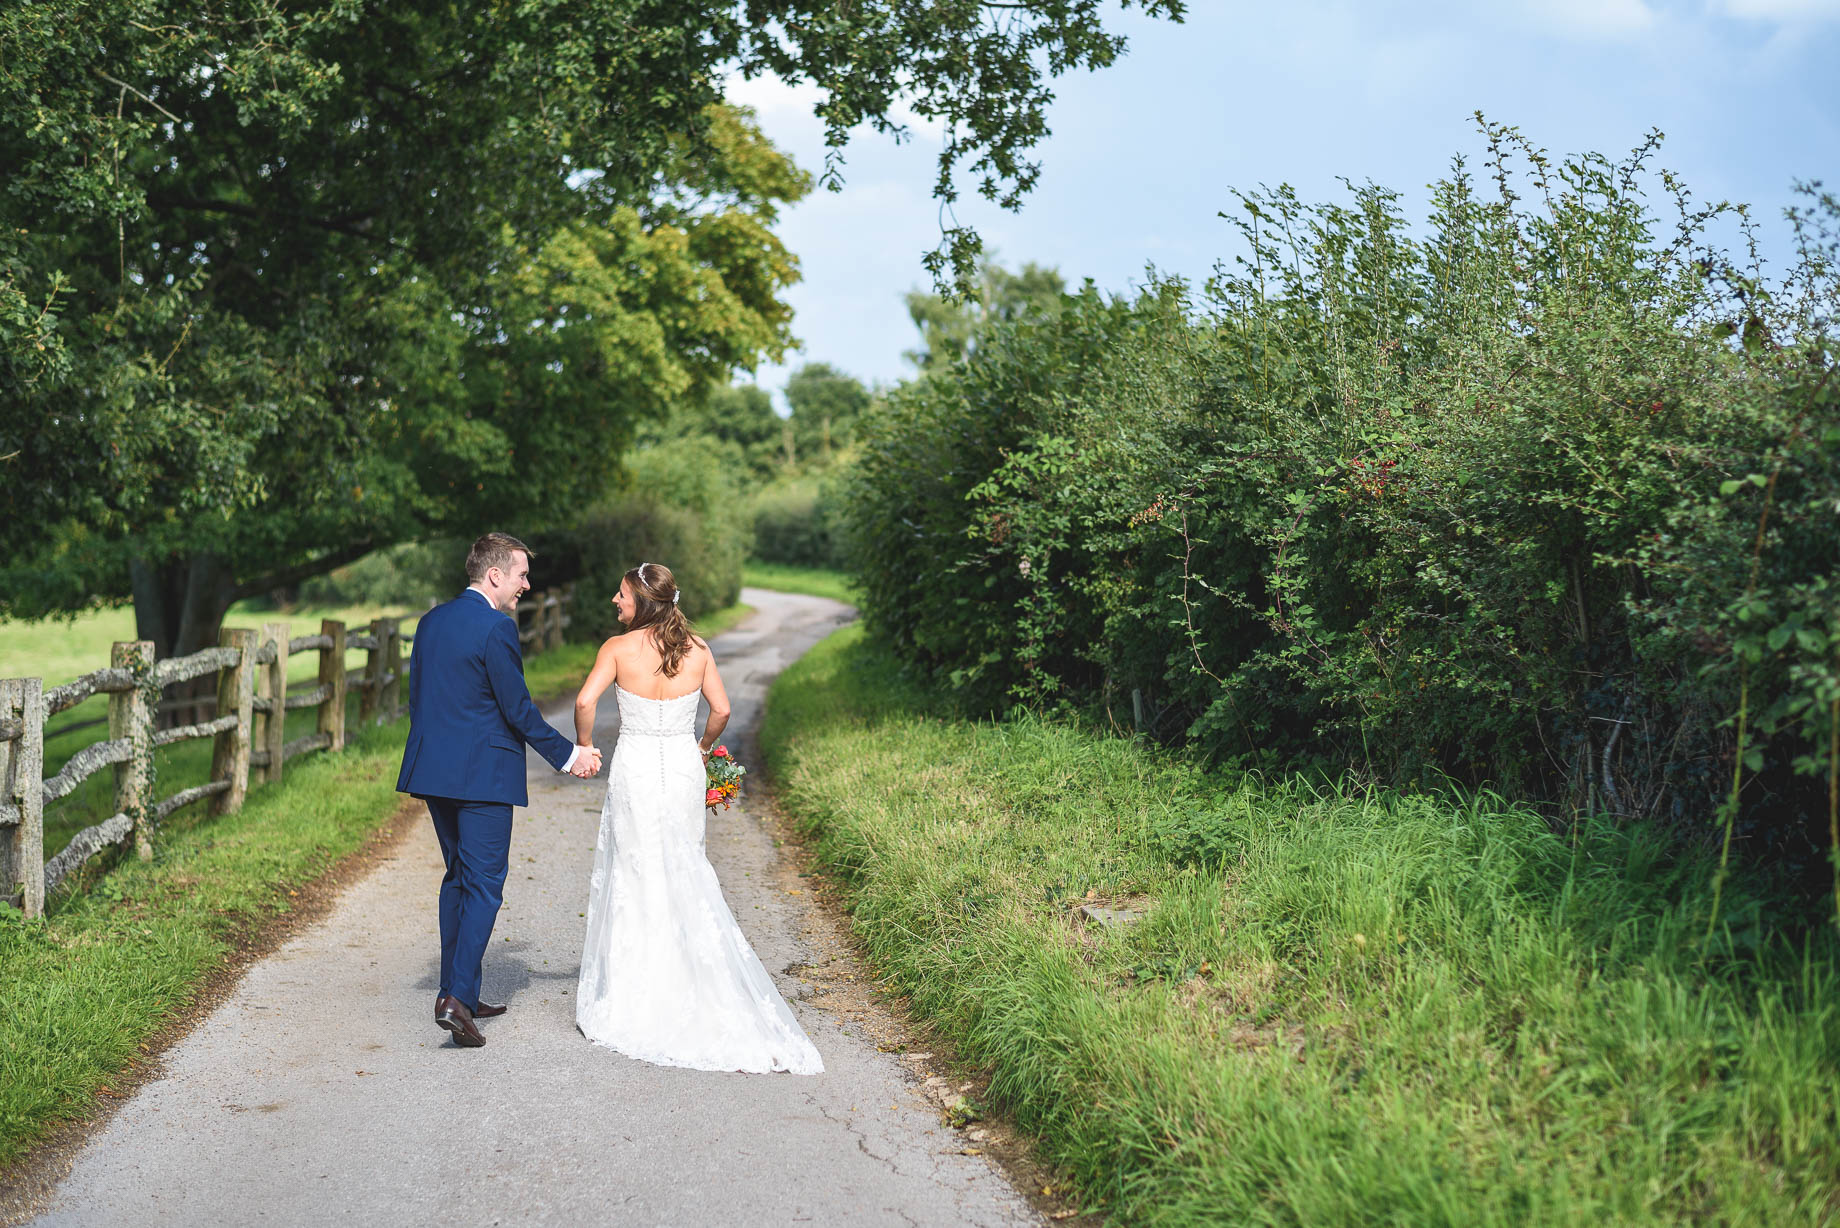 Gate Street Barn wedding photography - Guy Collier - Claire and Andy (78 of 192)